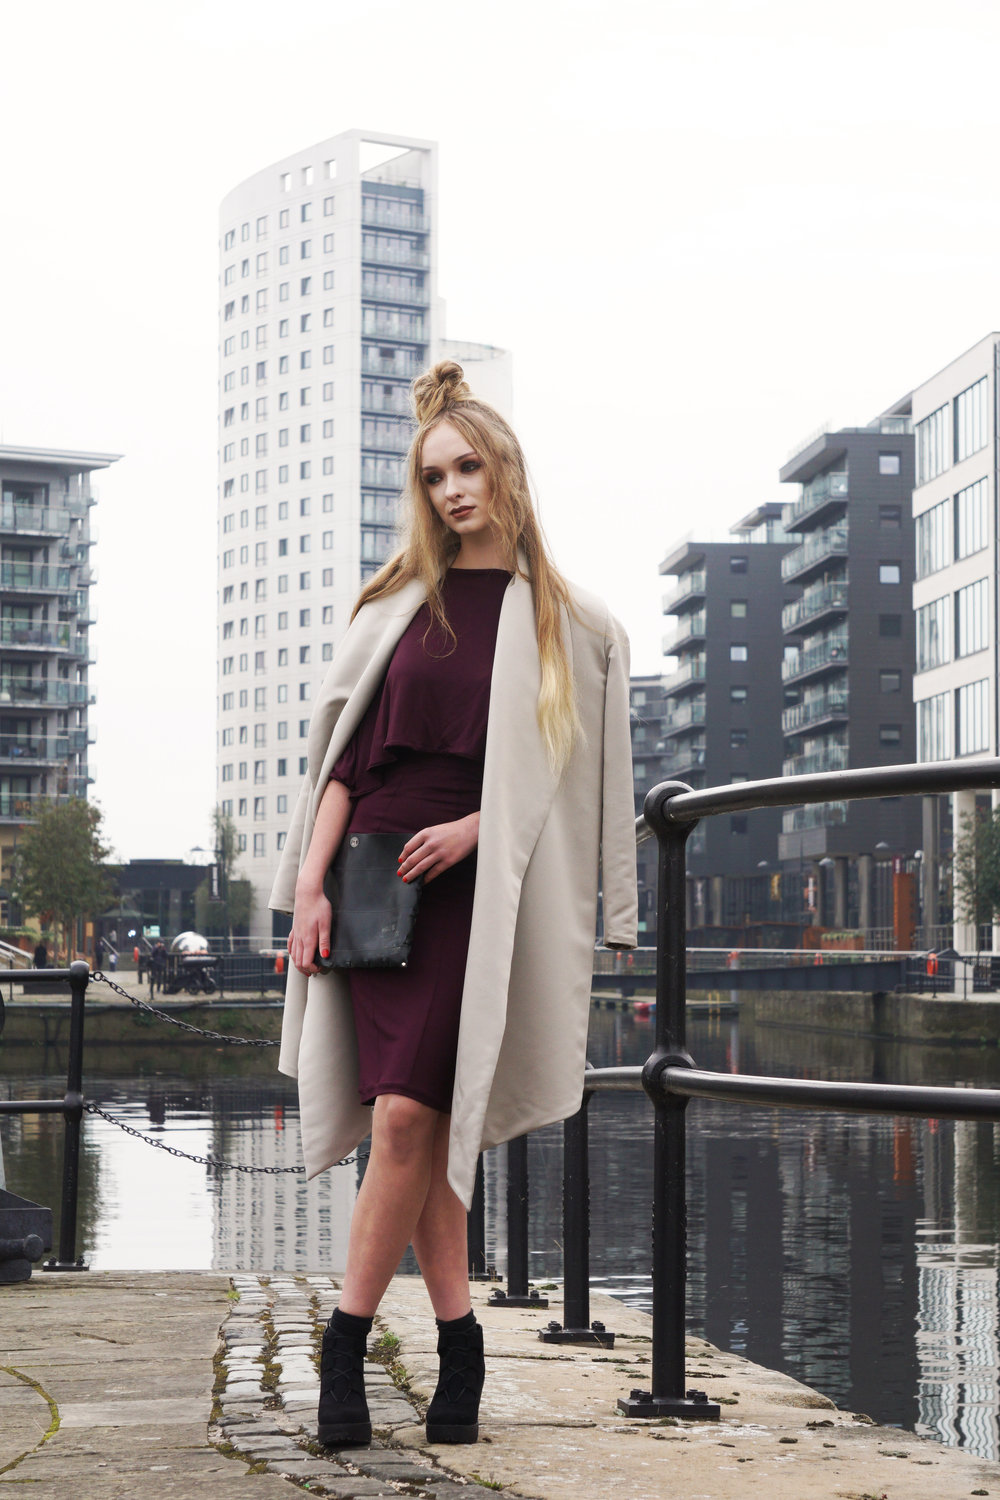 zaramia-ava-zaramiaava-leeds-fashion-designer-ethical-sustainable-taupe-jacket-versatile-plum-drape-mika-crop-top-yoko-skirt-leeds-dock-grunge-6